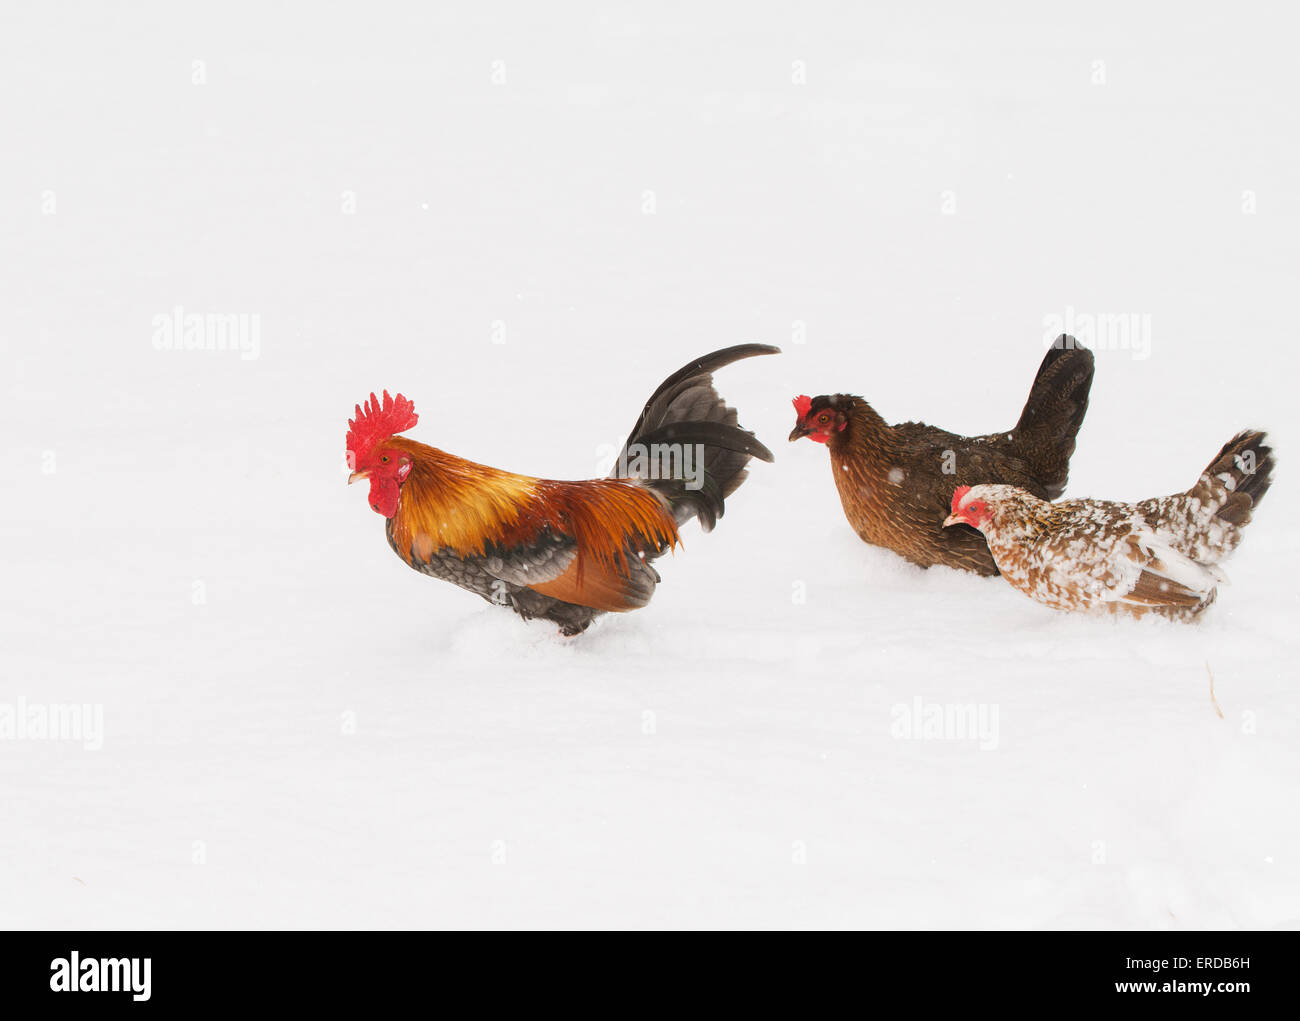 Rooster walking through deep snow with two hens, in snowfall - Stock Image